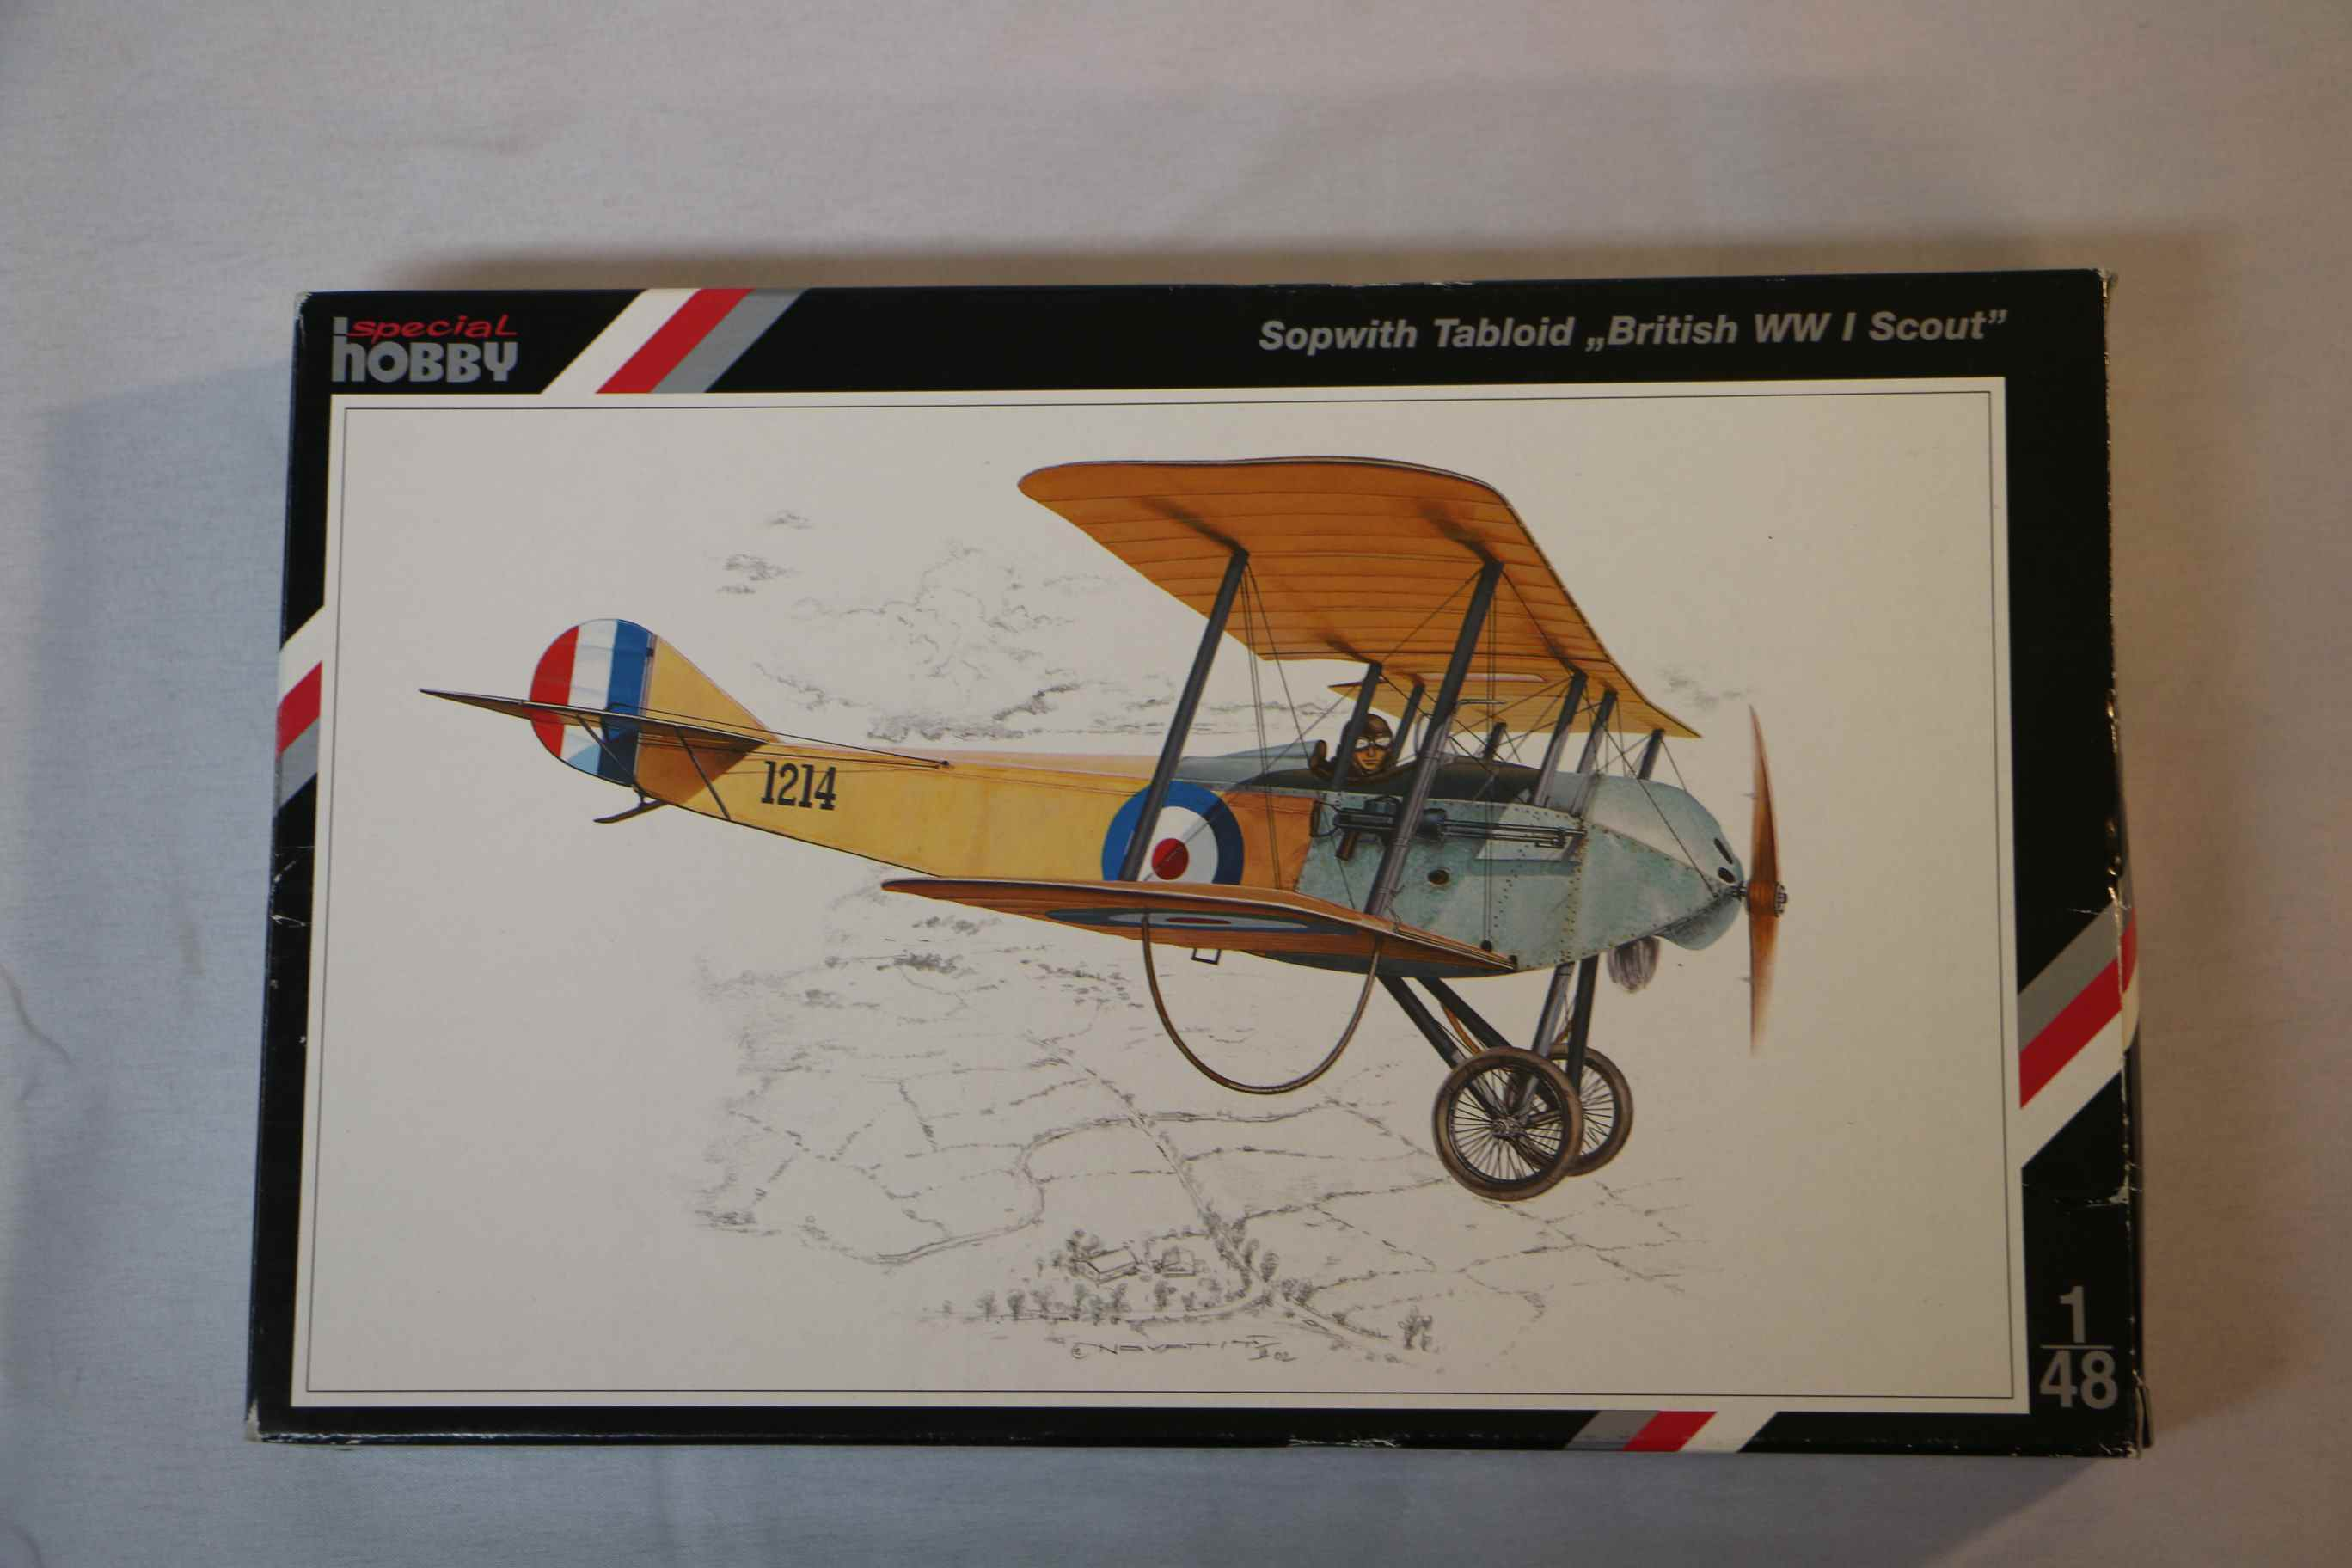 SPE48011 - Special Hobby 1/48 Sopwith Tabloid British WWI Scout